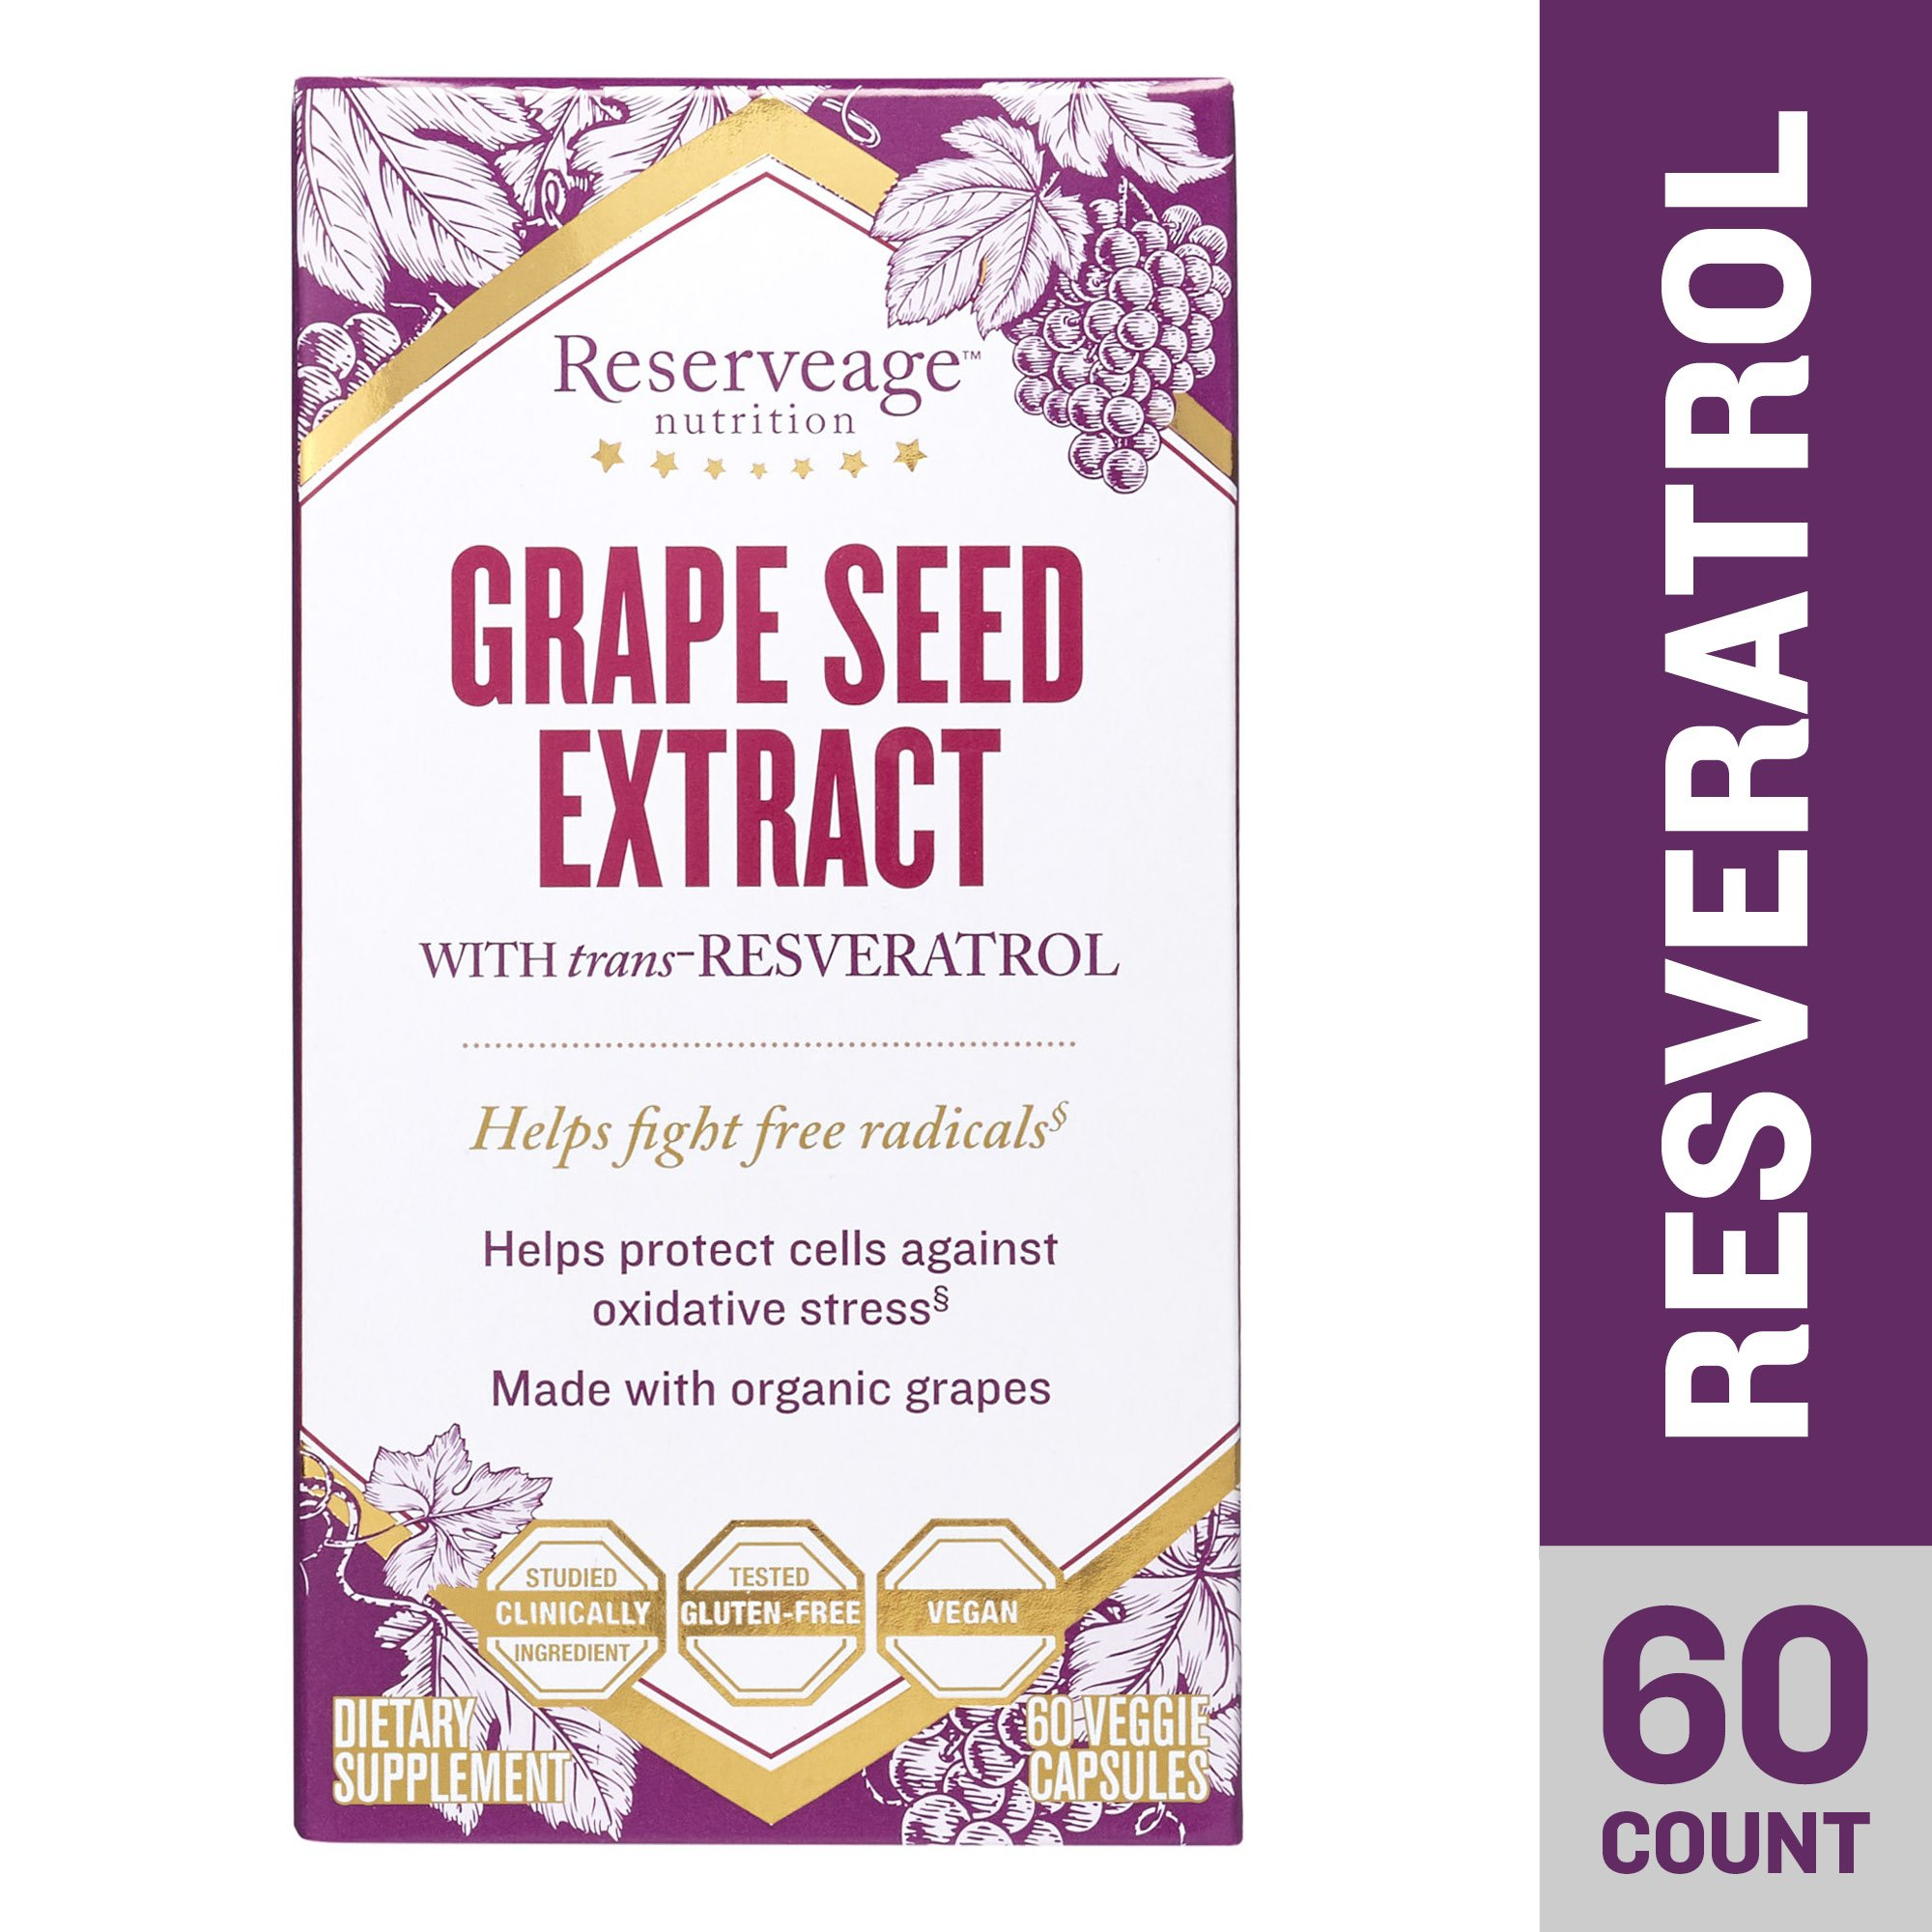 Reserveage - Grape Seed Extract with Resveratrol, for Antioxidant Protection, 60 Capsule